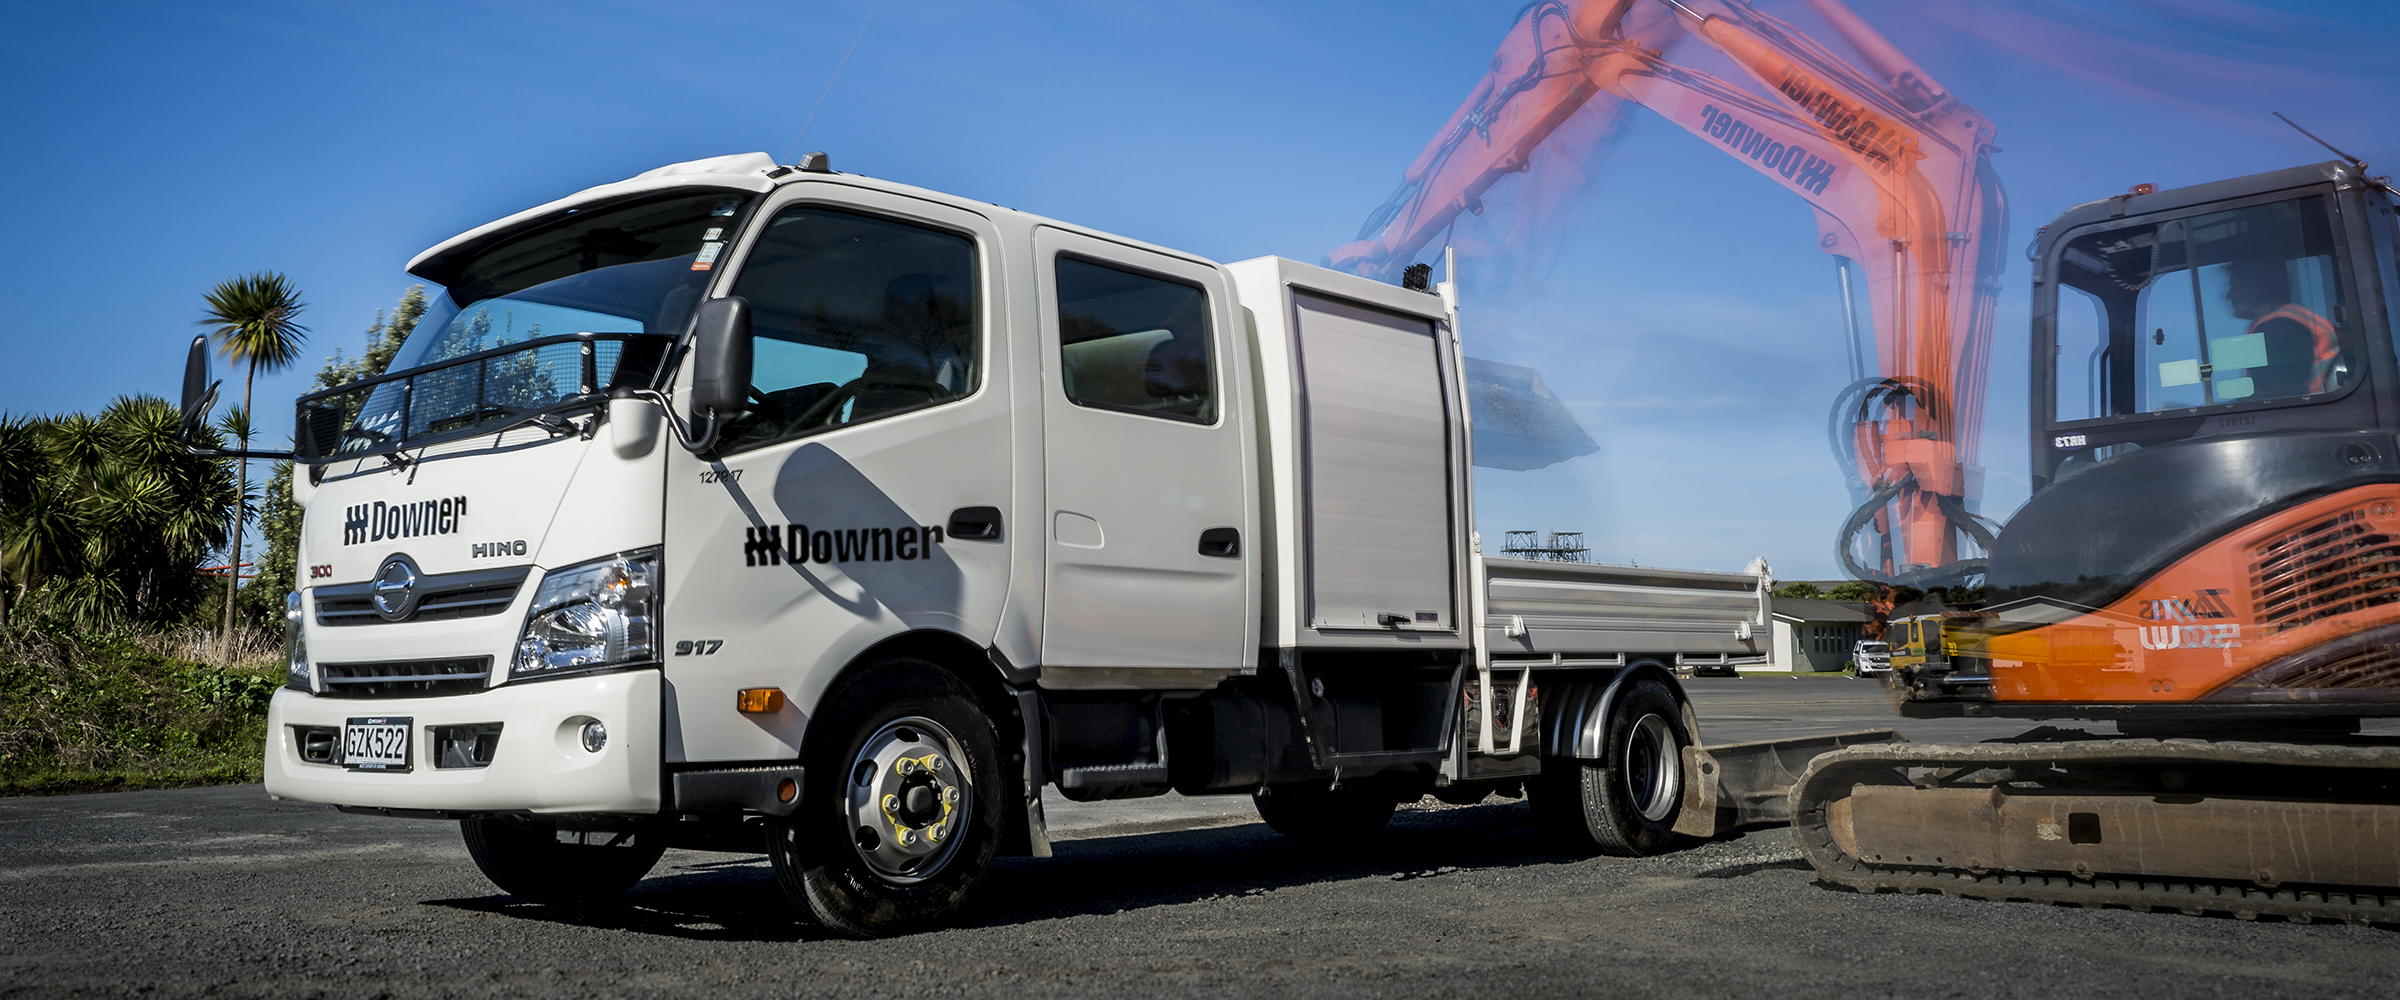 2007 Hino Wiring Diagram Schematic Diagrams 700 Best Image 2018 85 Dodge Truck Charging System